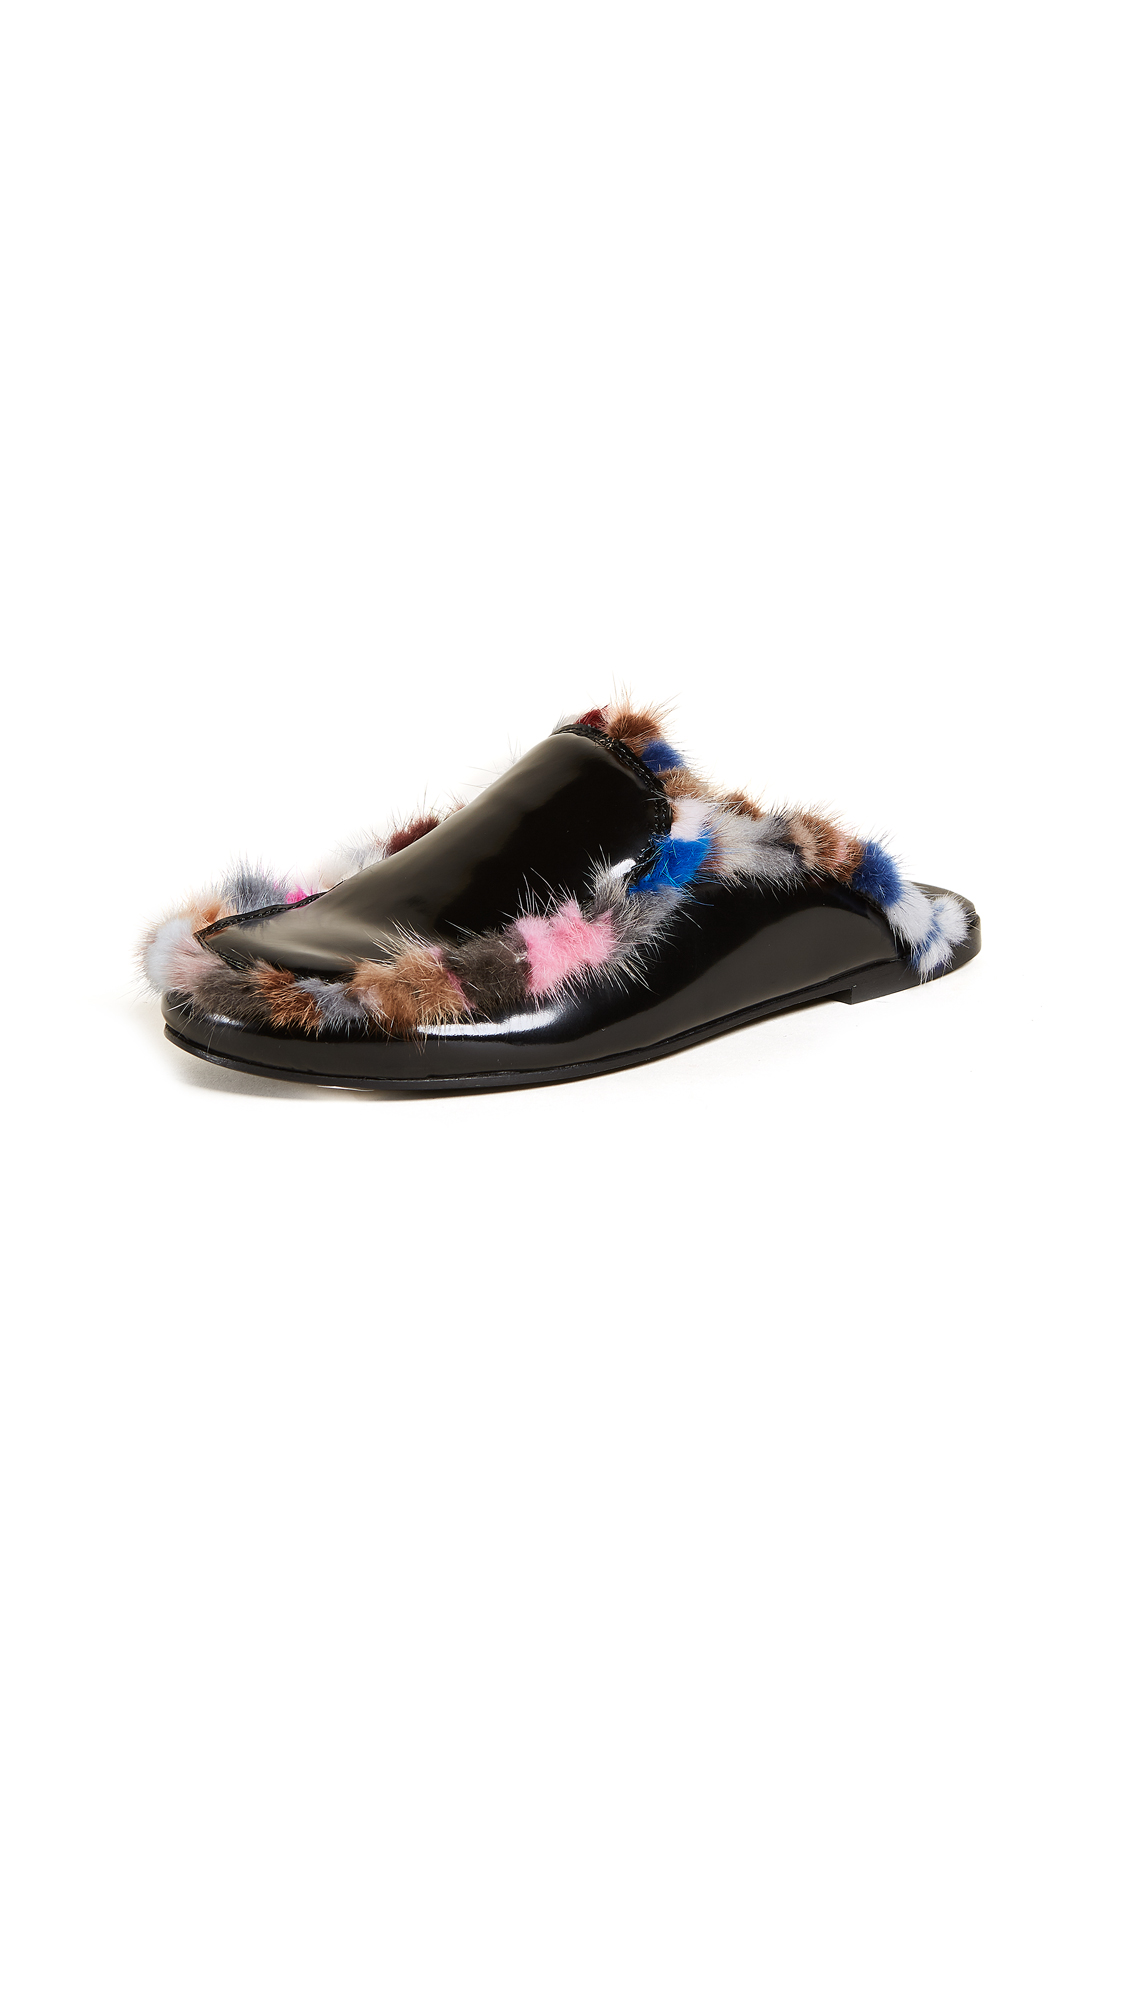 Joshua Sanders Borderline Mules - Multi/Black